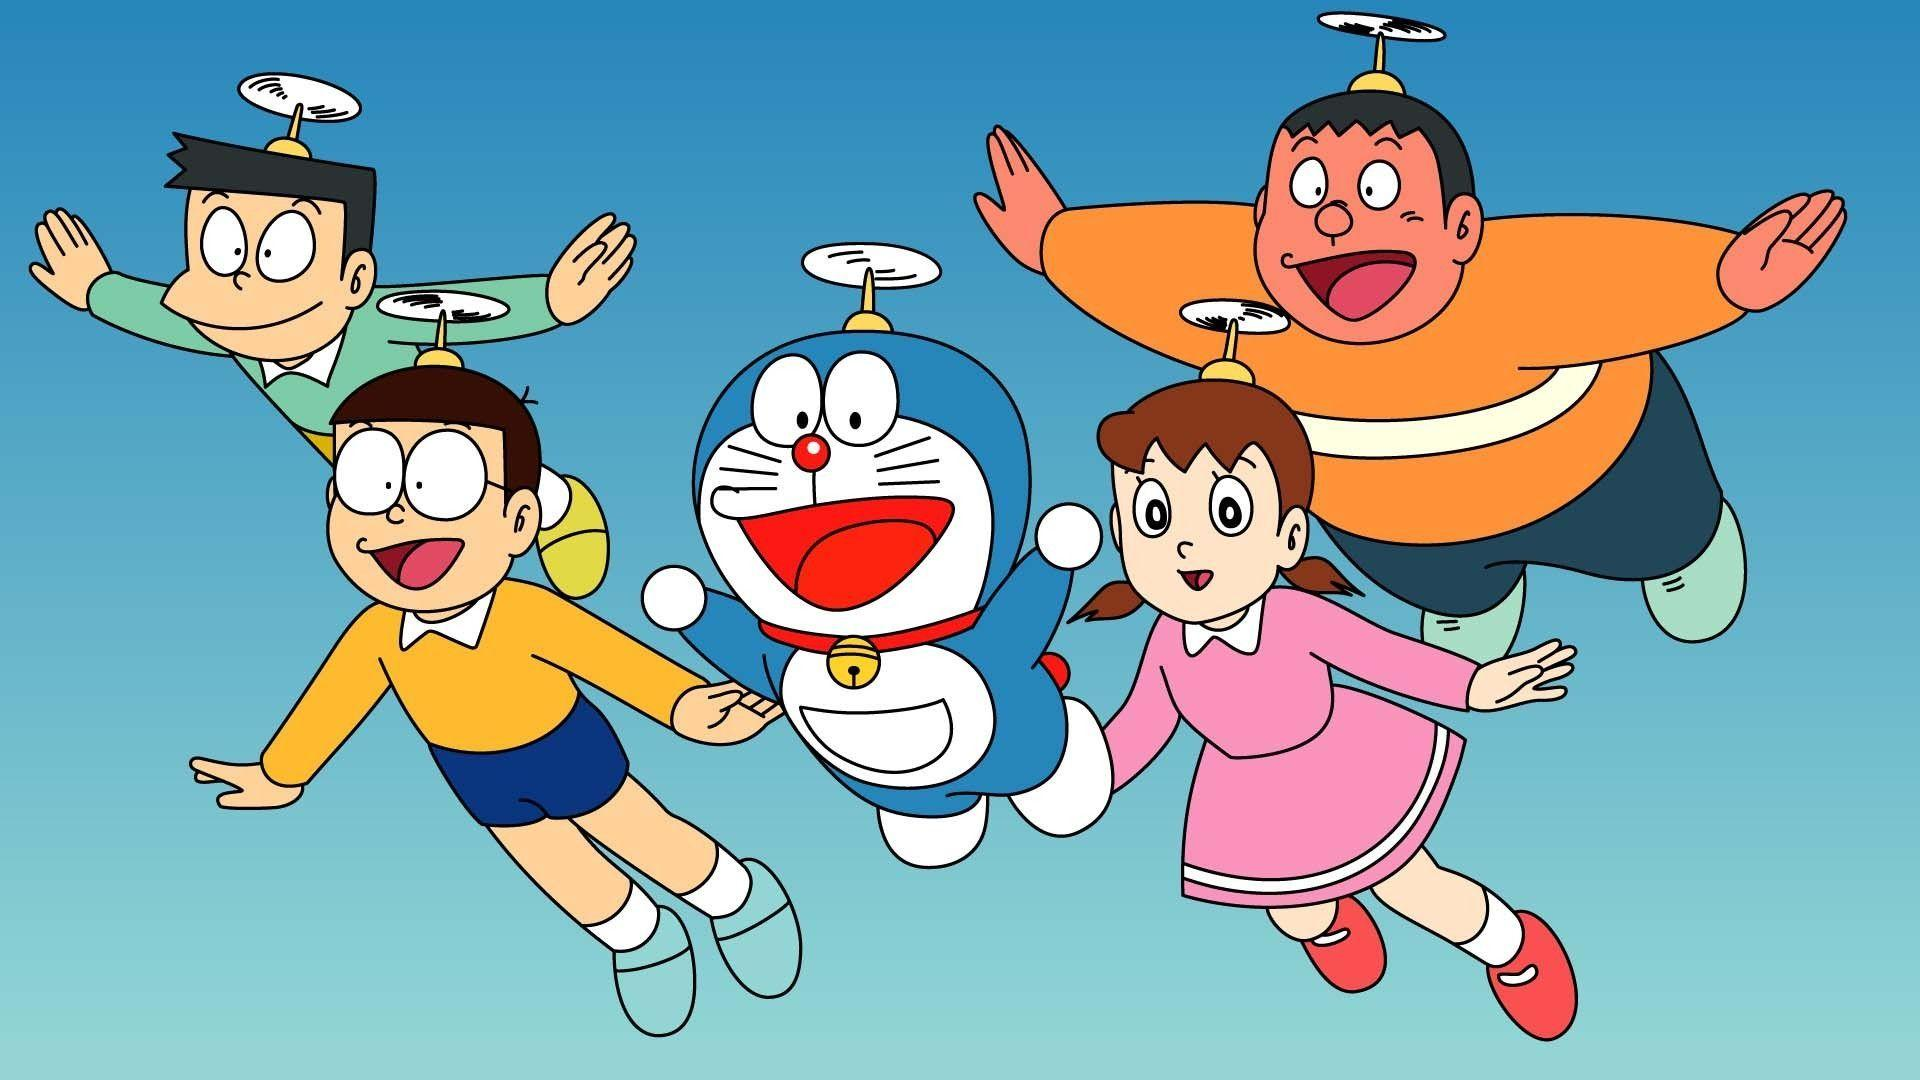 Doraemon Robot Wallpapers - Wallpaper Cave